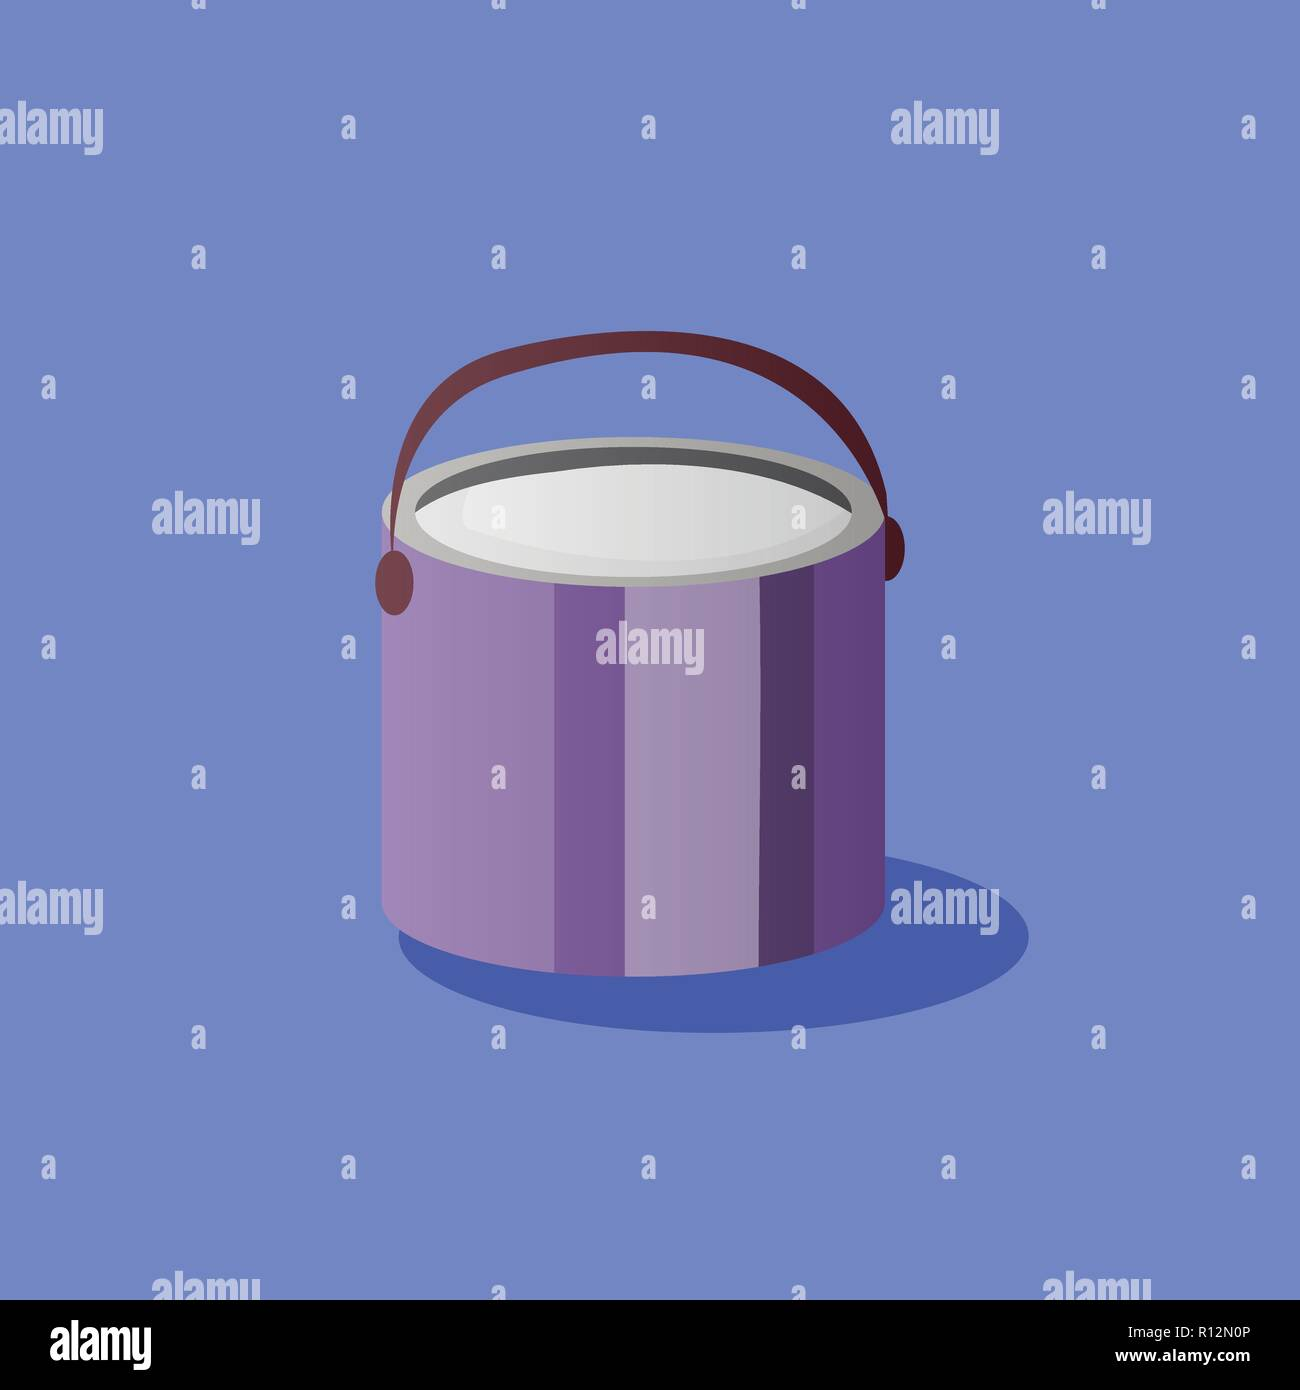 Illustration of opened  paint bucket with handle. Vector object in flat style - Stock Vector